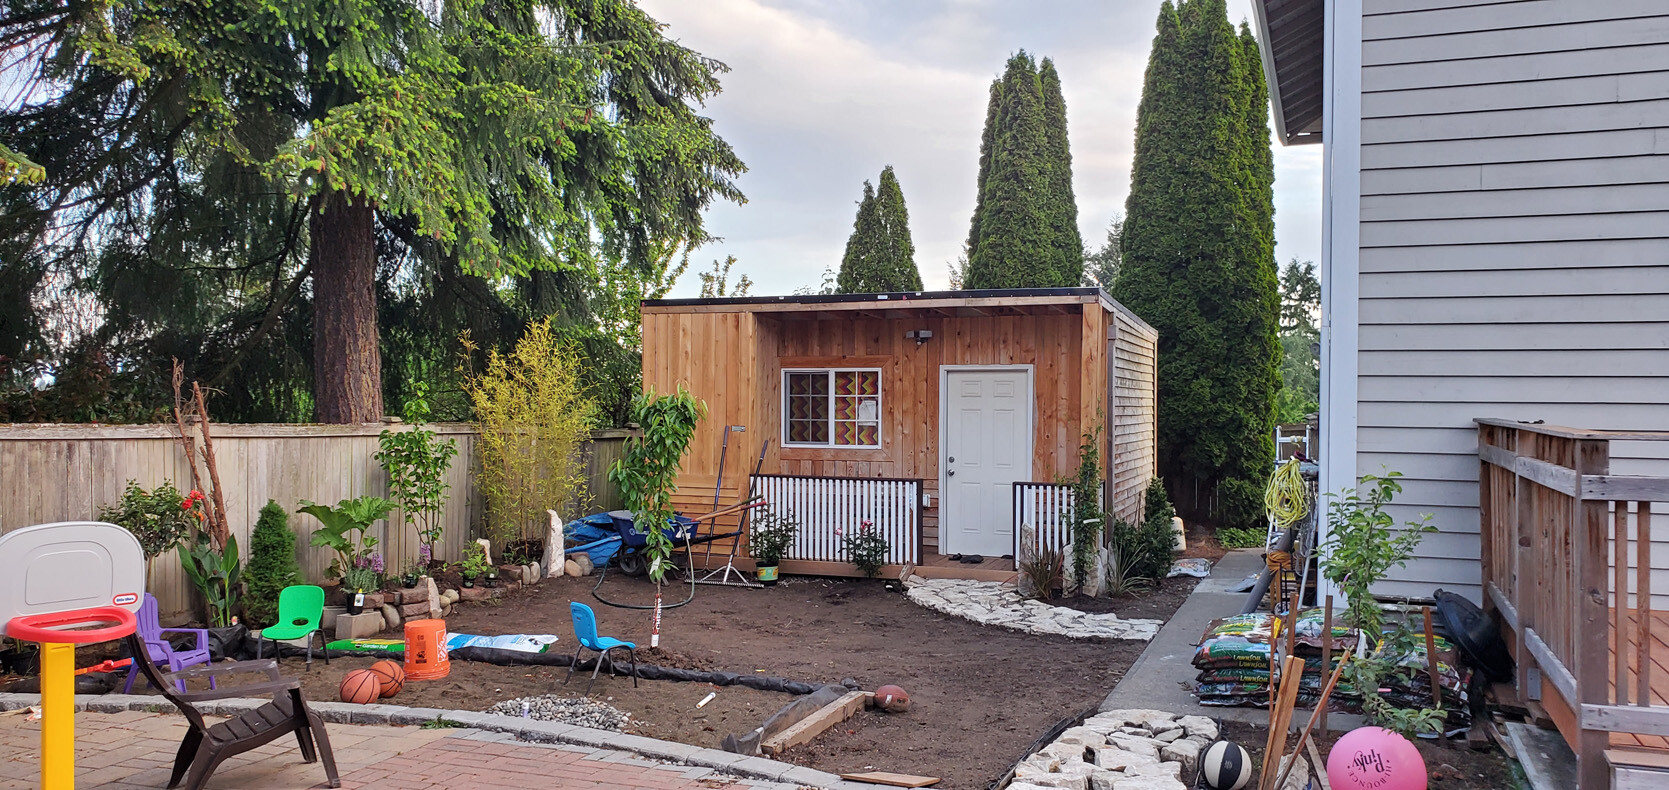 Garden in Progress – Dreaming of a better view